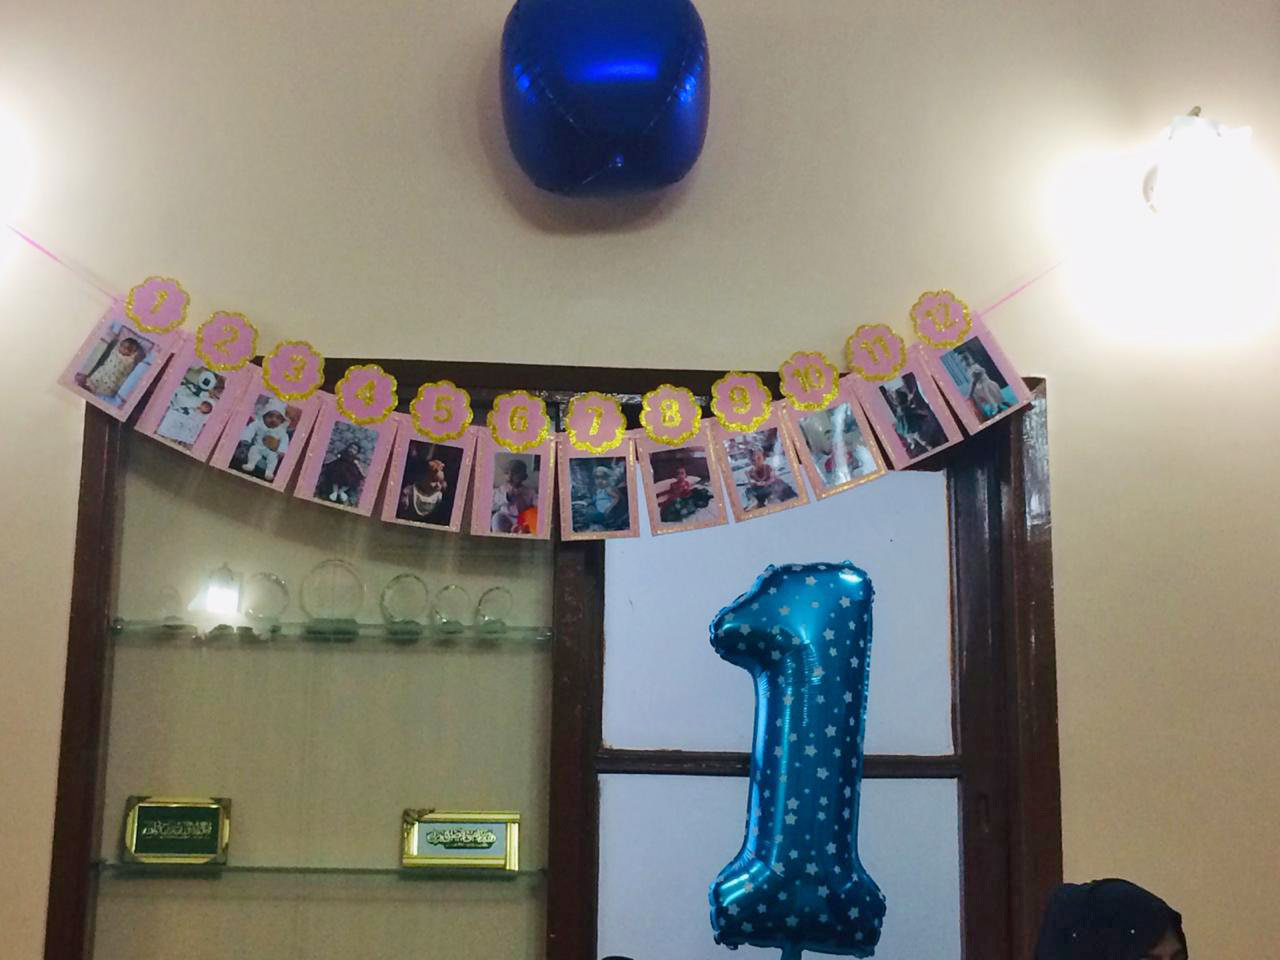 Baby Ayra's timeline and balloons.